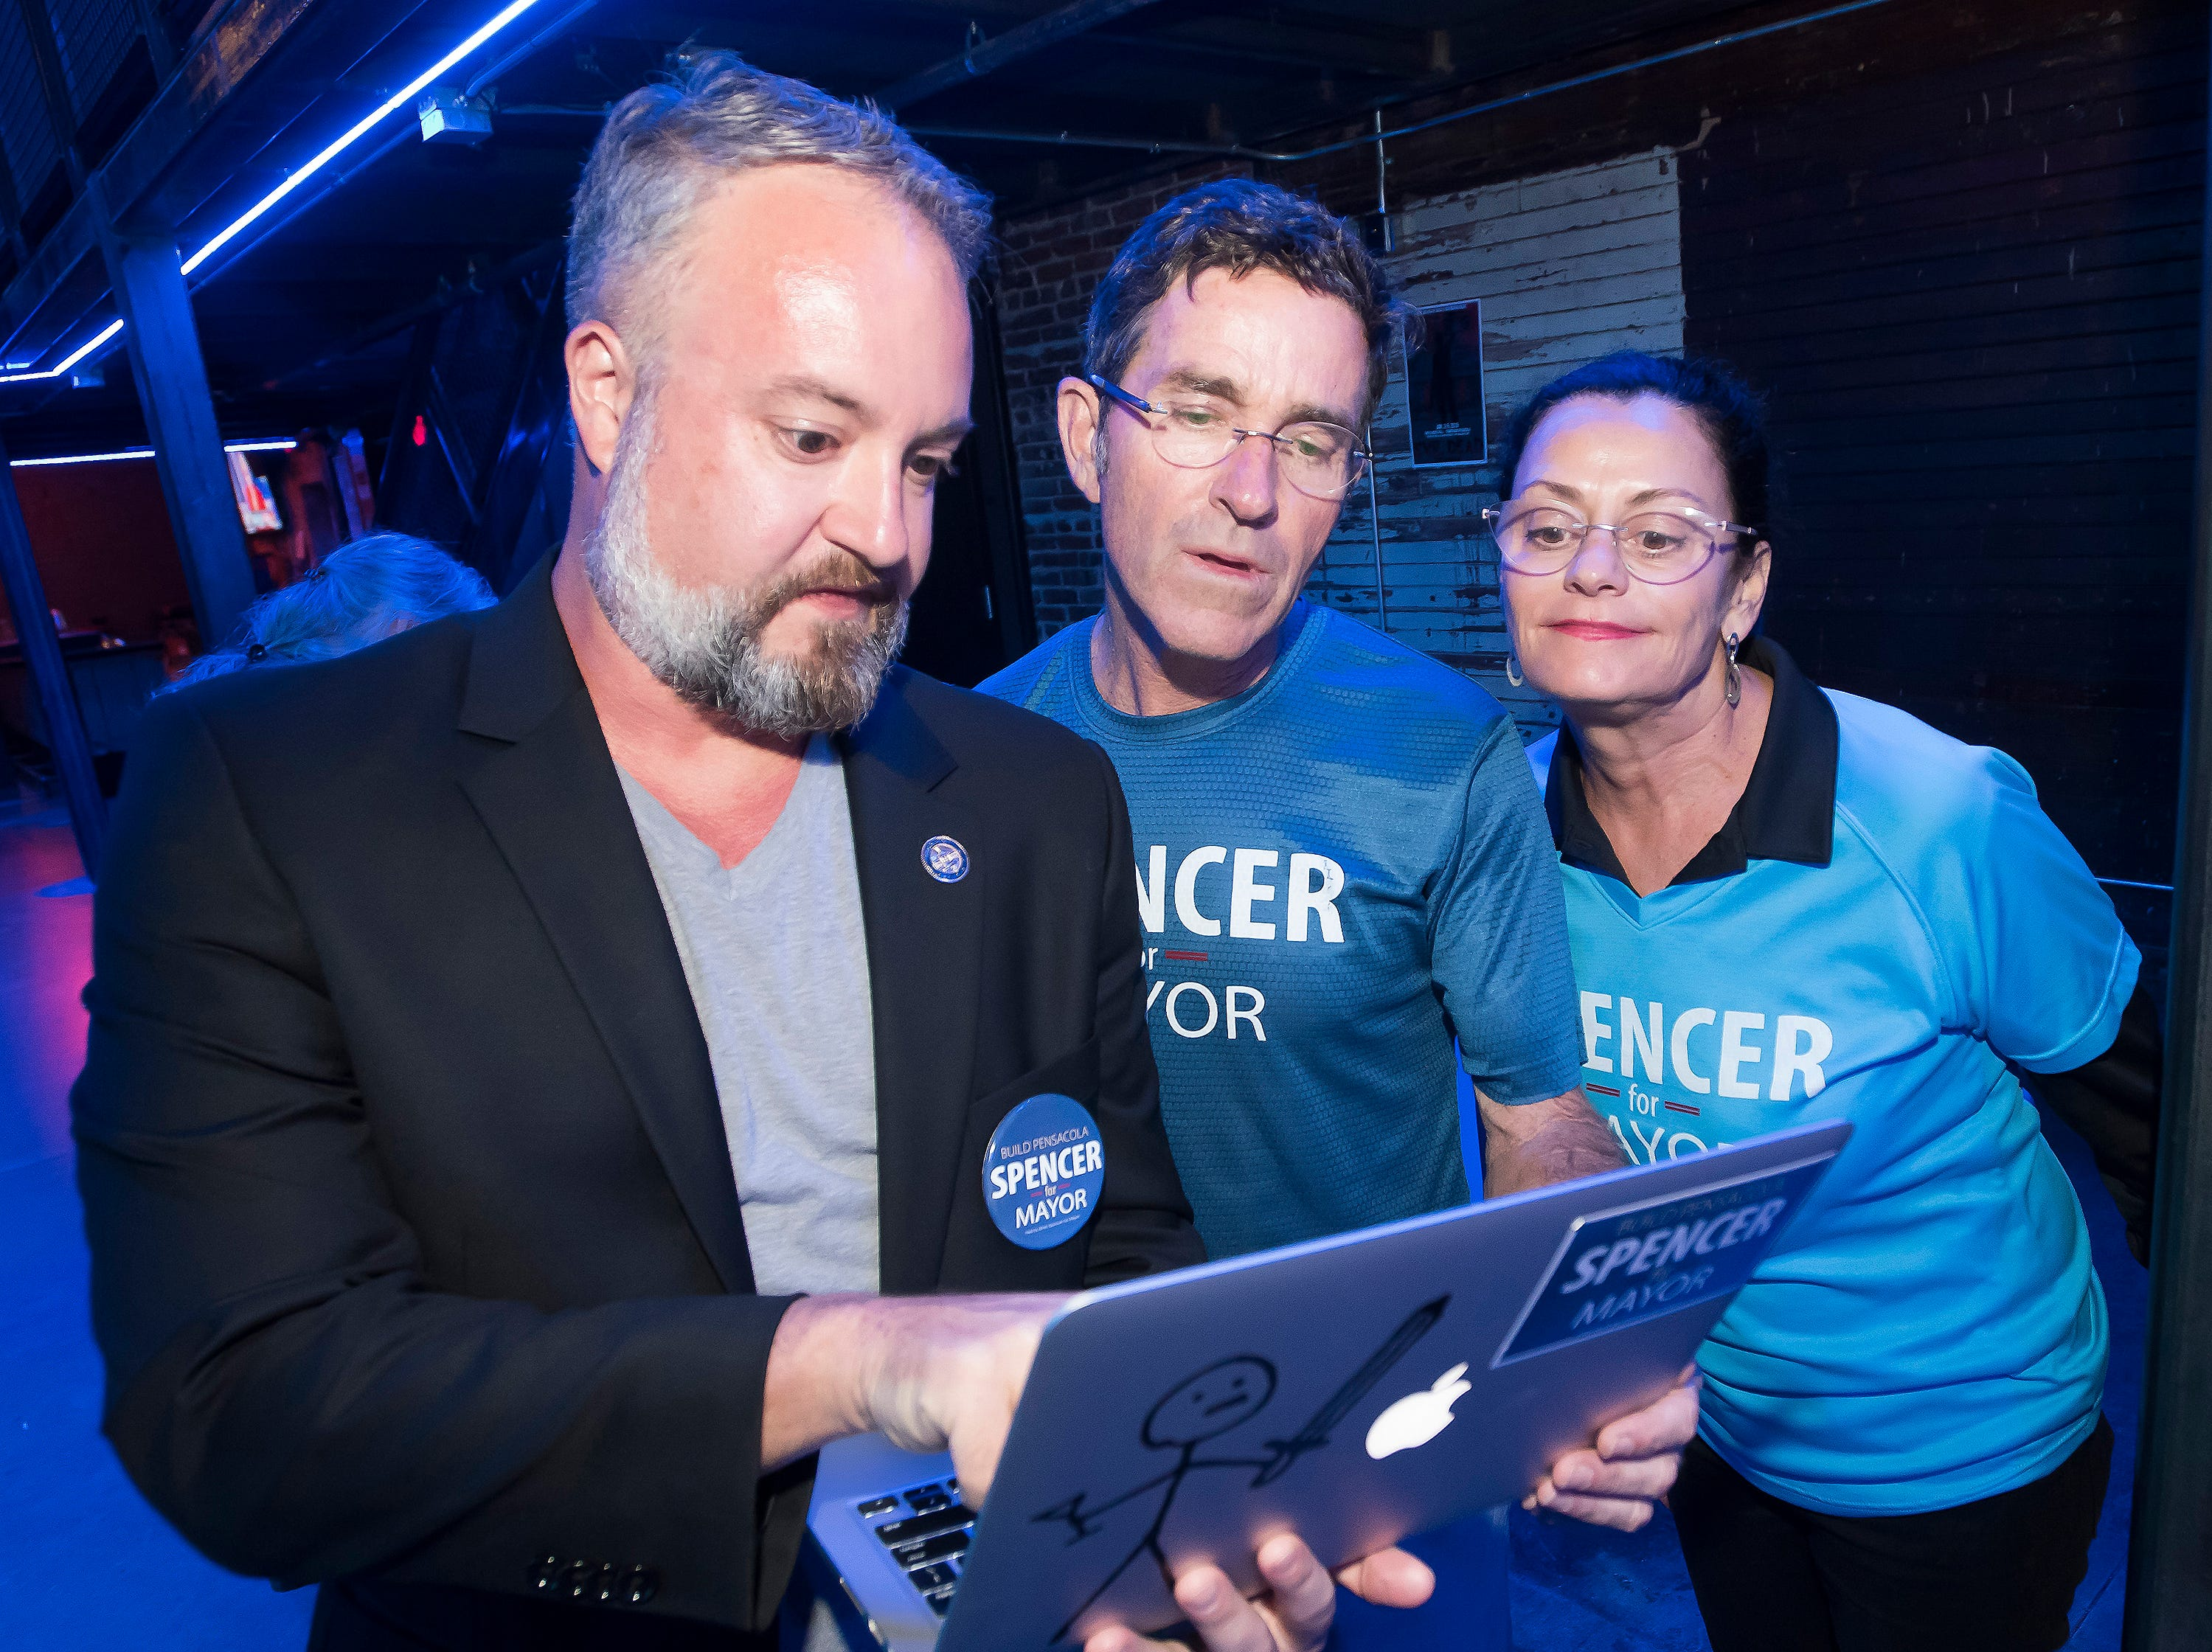 Mayoral candidate Brian Spencer, and his wife Crystal look on as Phil Nickinson monitors the election results during an end of campaign party at Vinyl on Tuesday, Nov. 6, 2018.